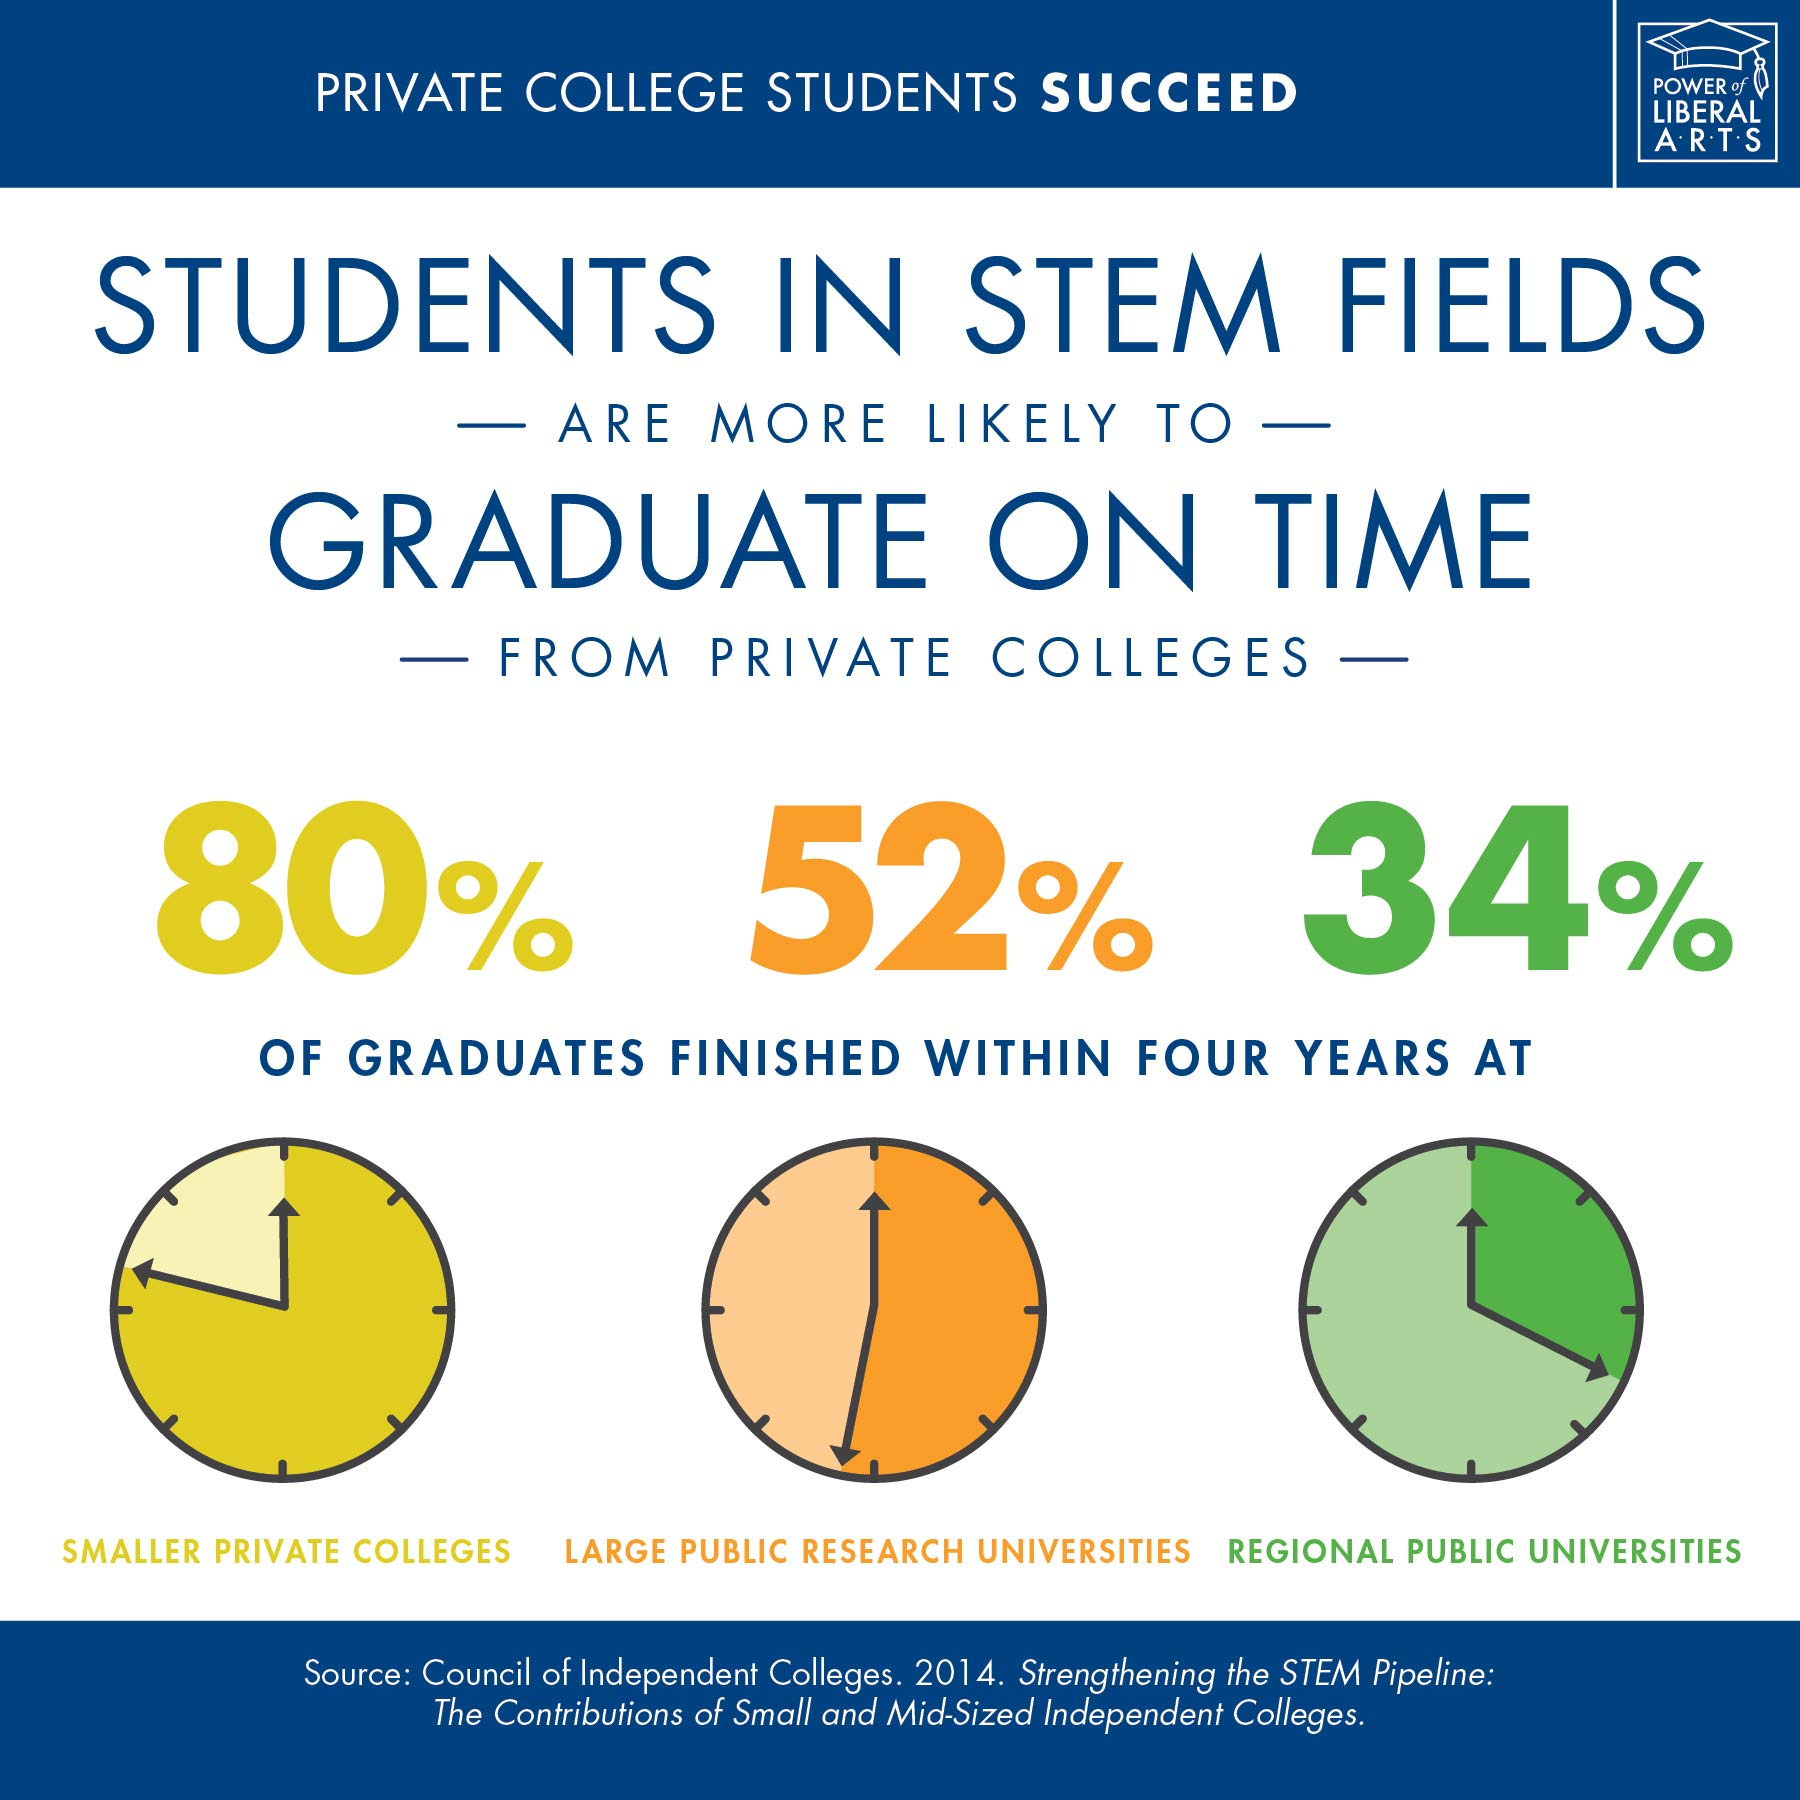 Infographic: Students in STEM fields are more likely to graduate on time from private colleges